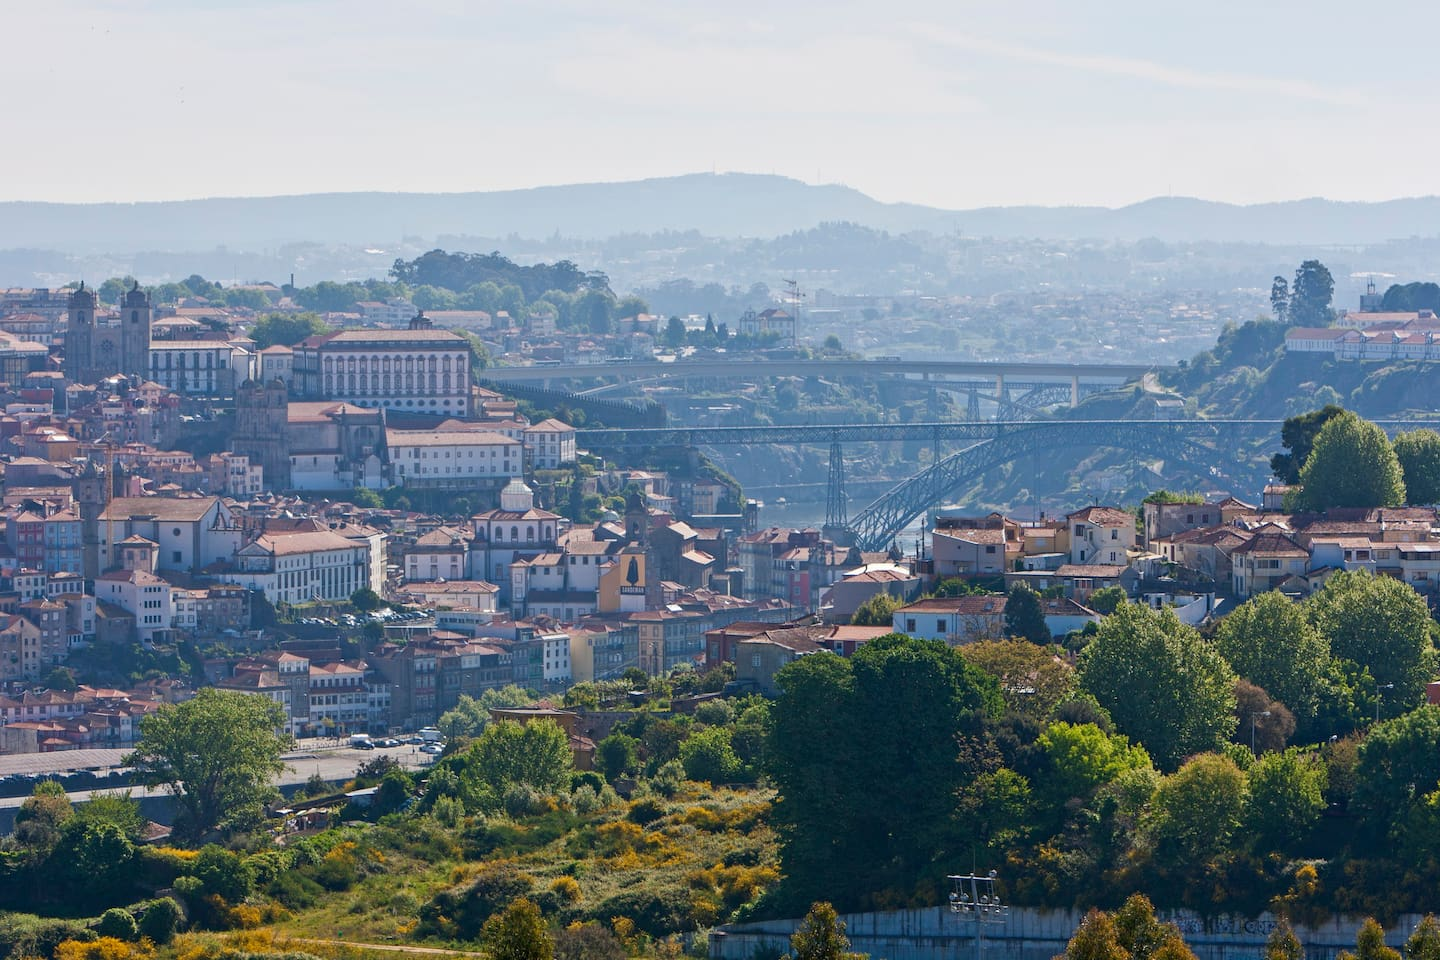 View of Porto historic center from the apartment windows!